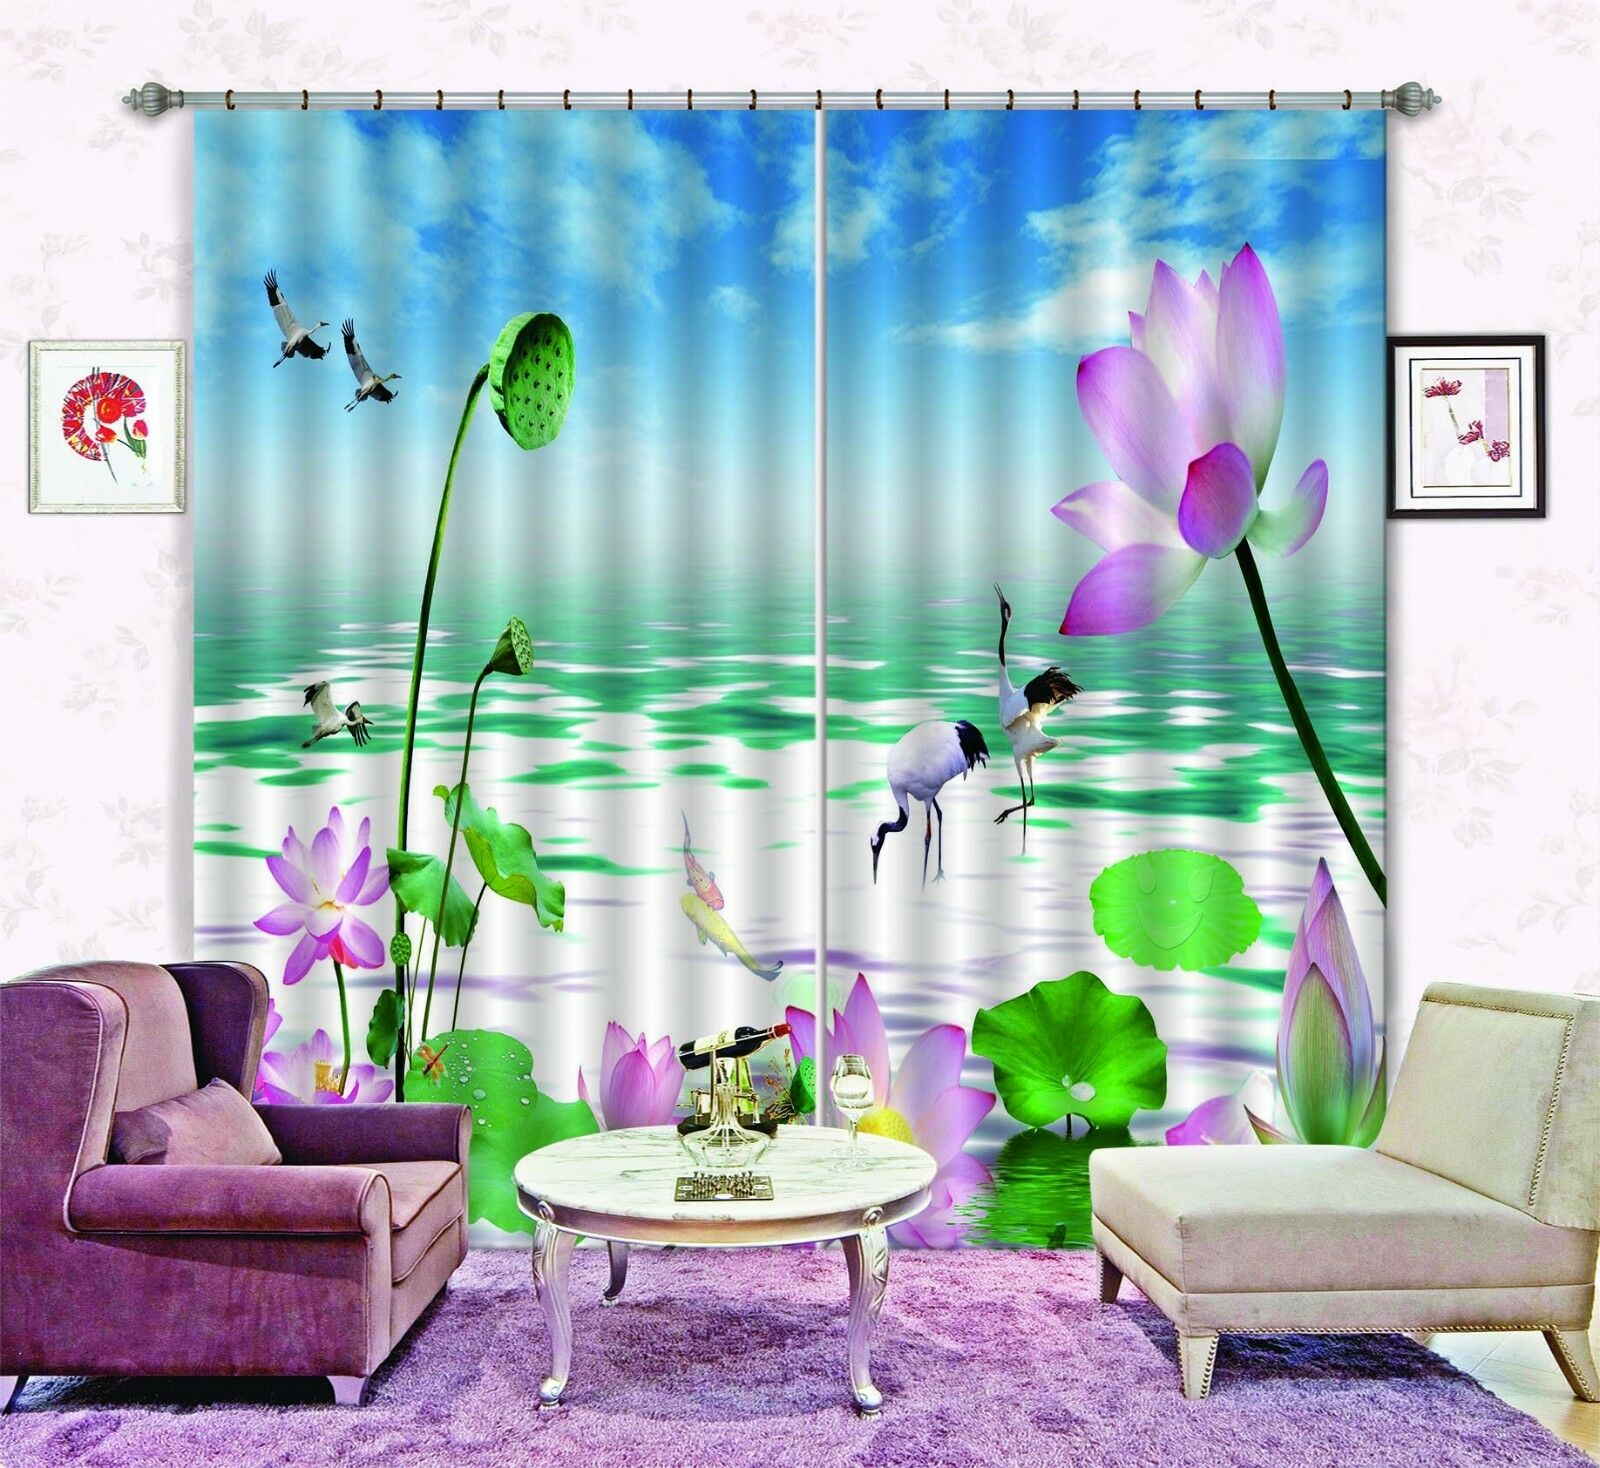 3D Lotus sky 35 Blockout Photo Curtain Printing Curtains Drapes Fabric Window AU